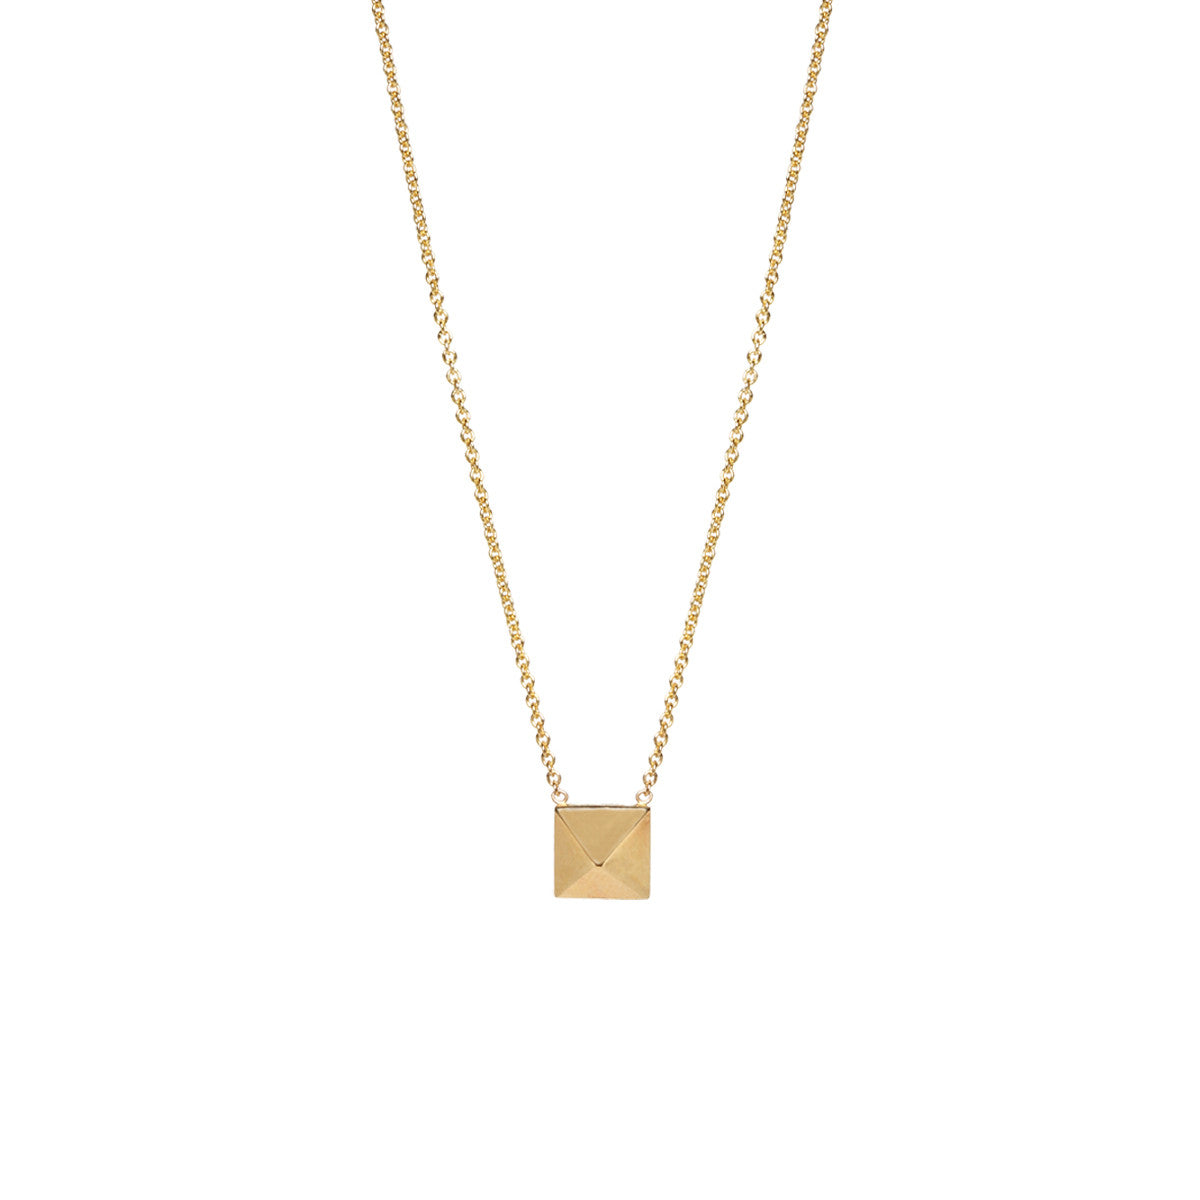 14k single spike necklace